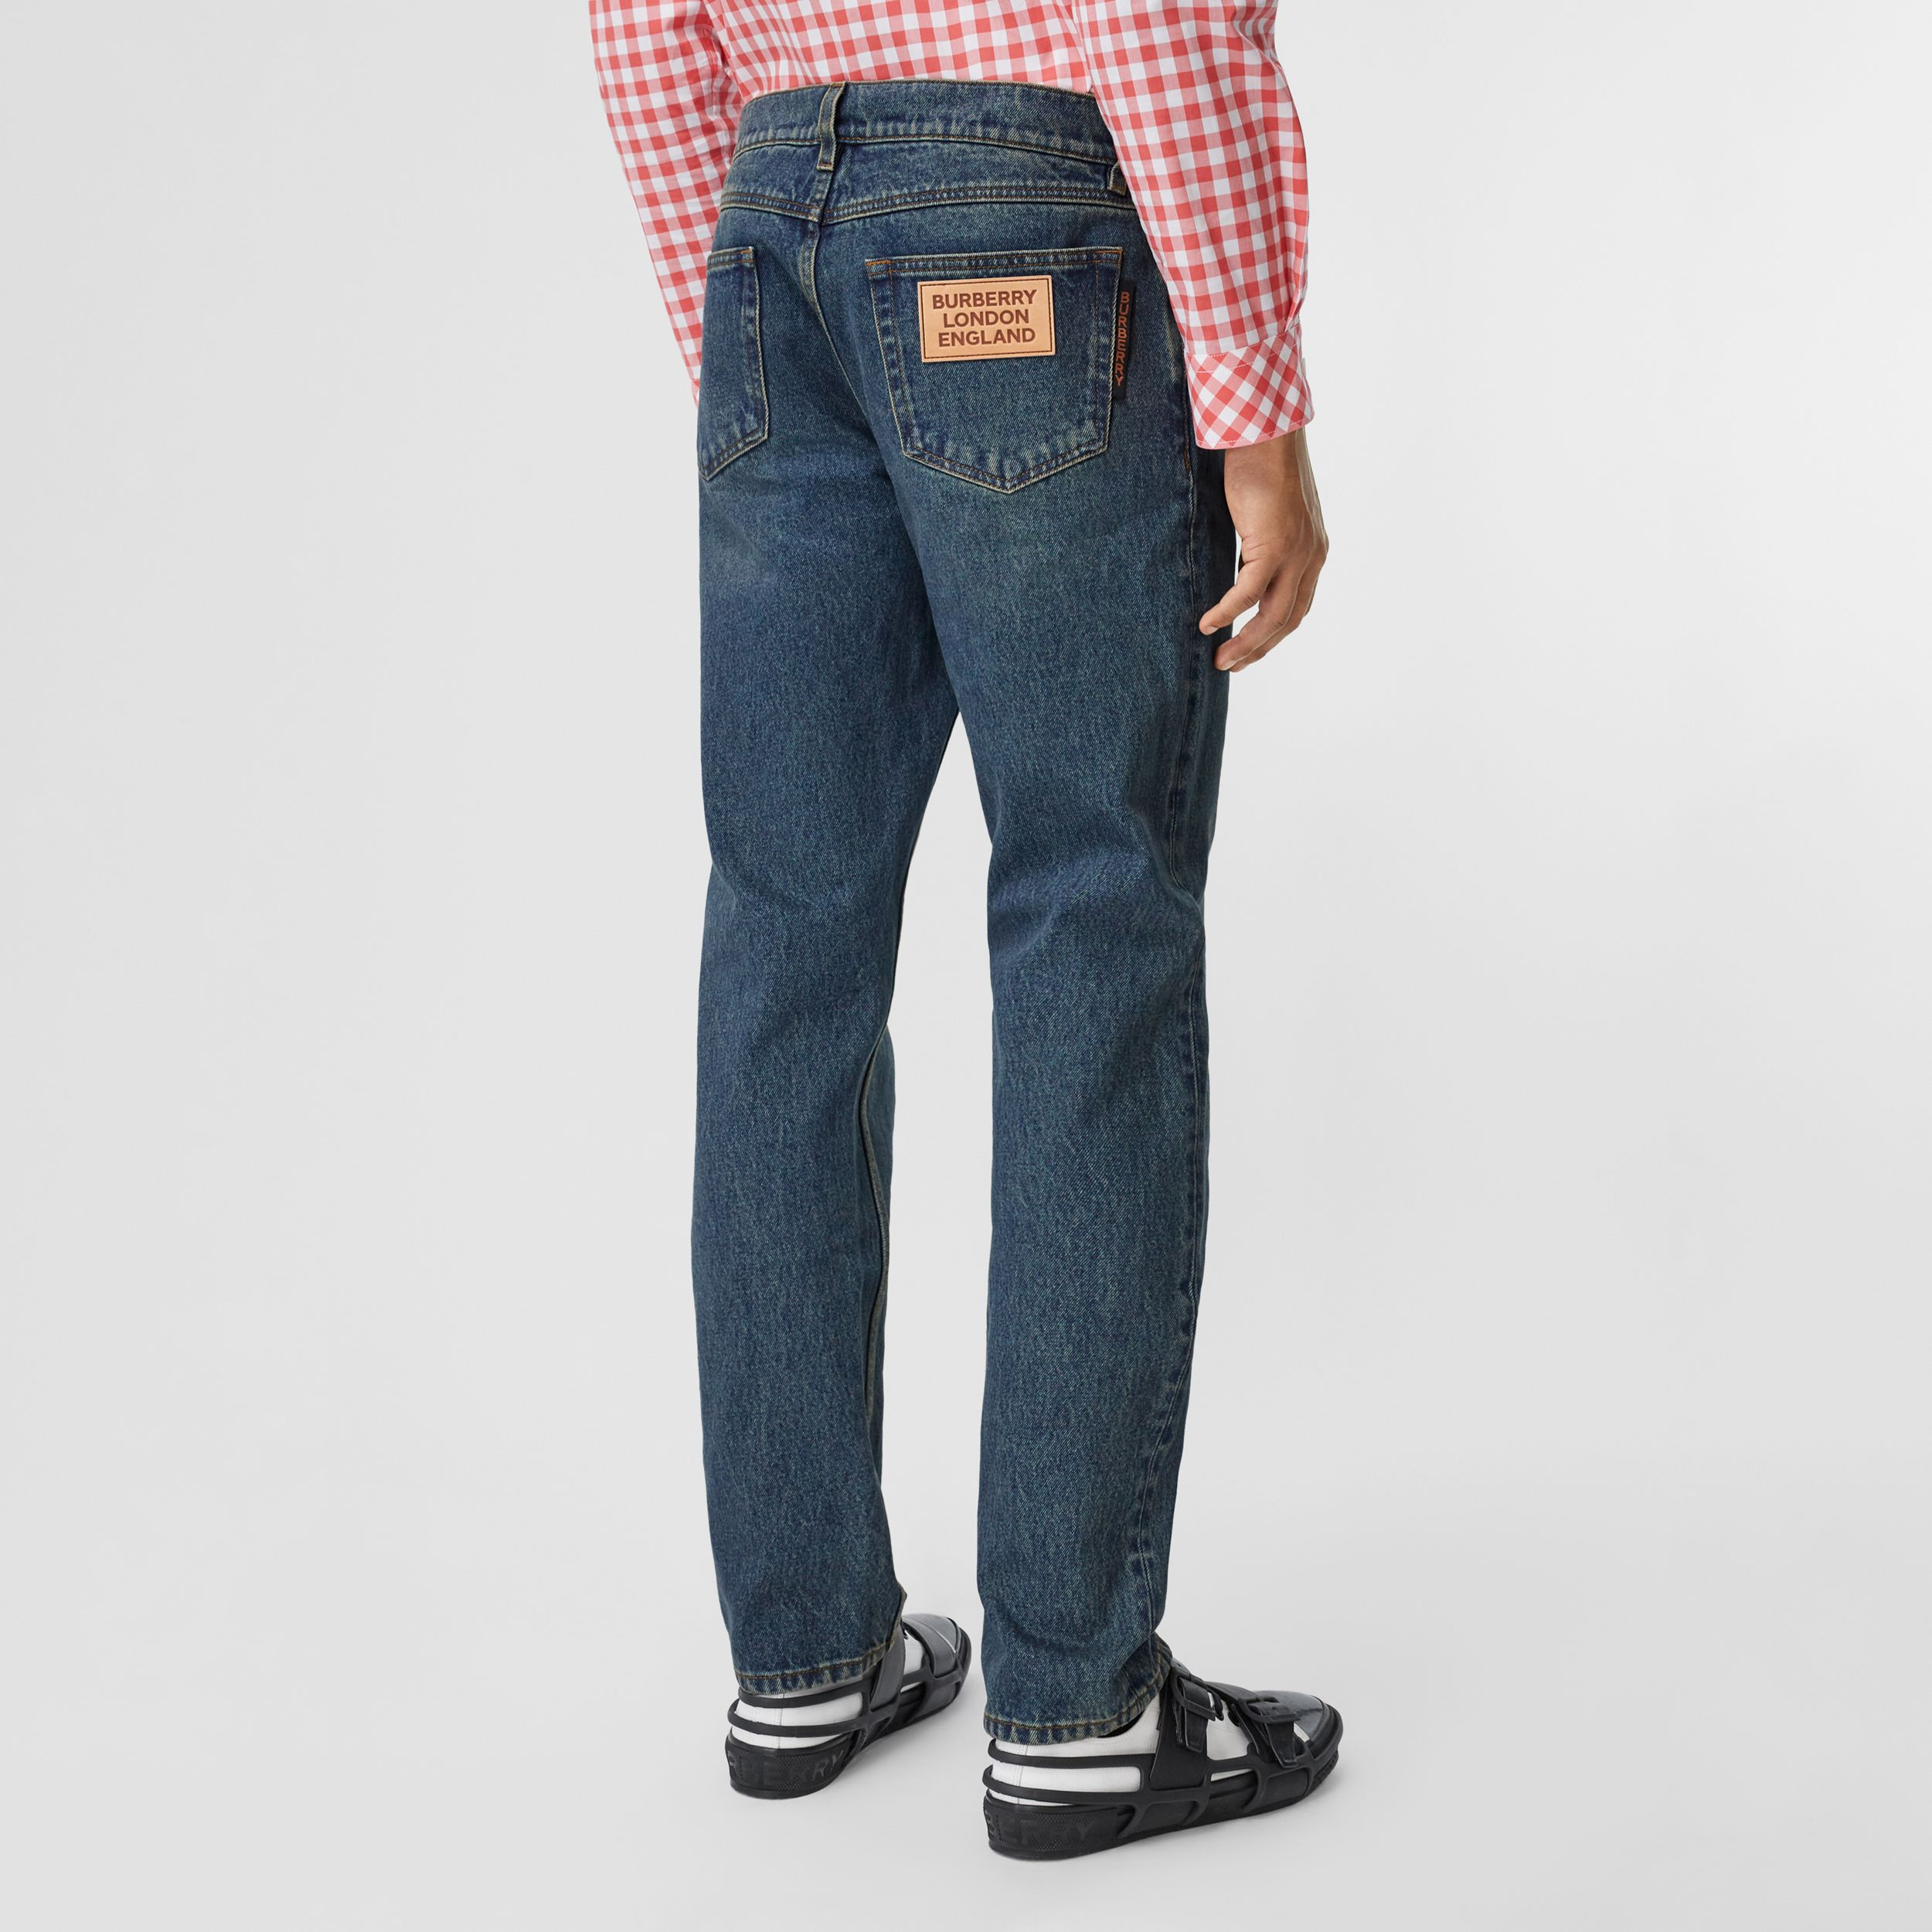 Straight Fit Washed Jeans in Indigo - Men | Burberry Canada - 3